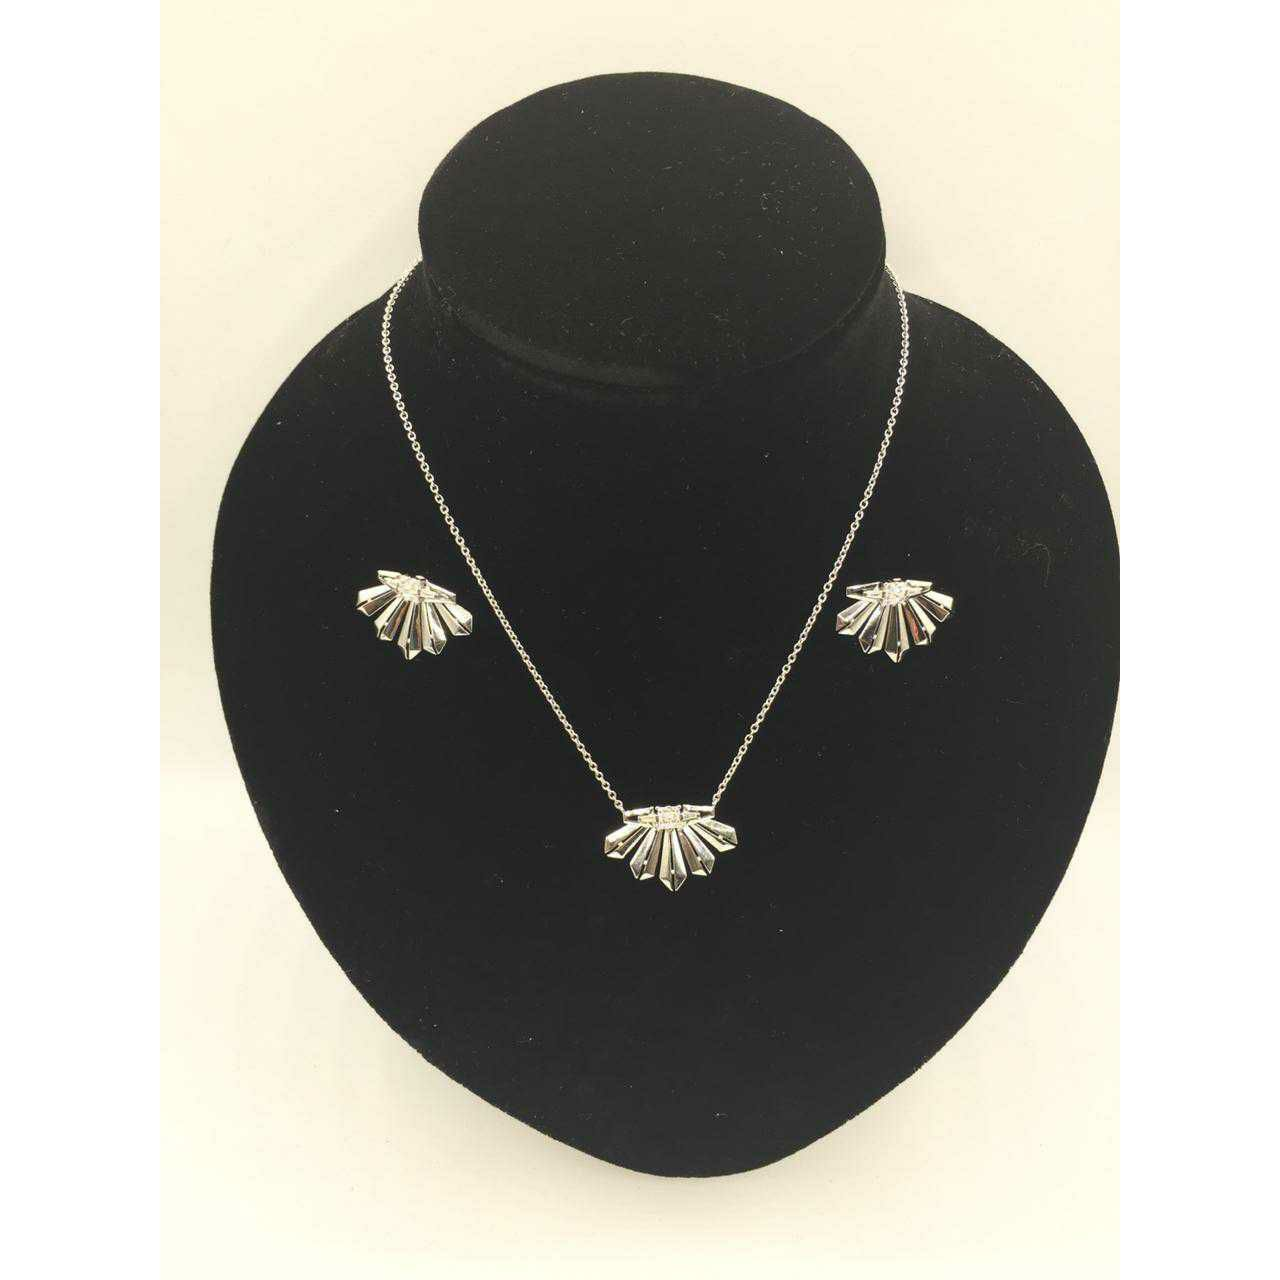 92.5 Sterling Silver Rodyam Weeding Chain With Pendant & Earring Set Ms-3098